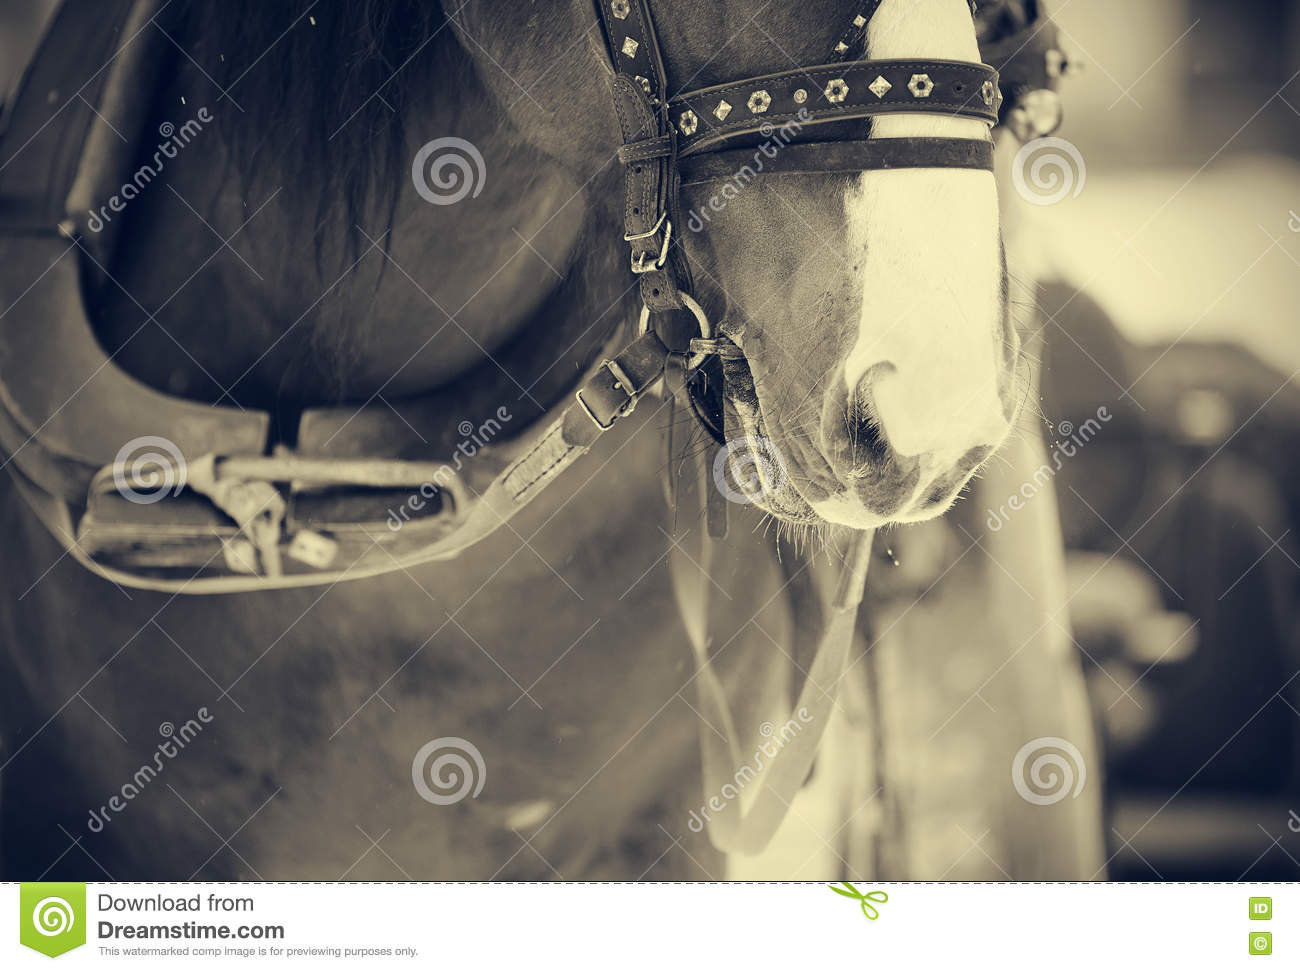 Muzzle is draught horse harnessed to a sled.